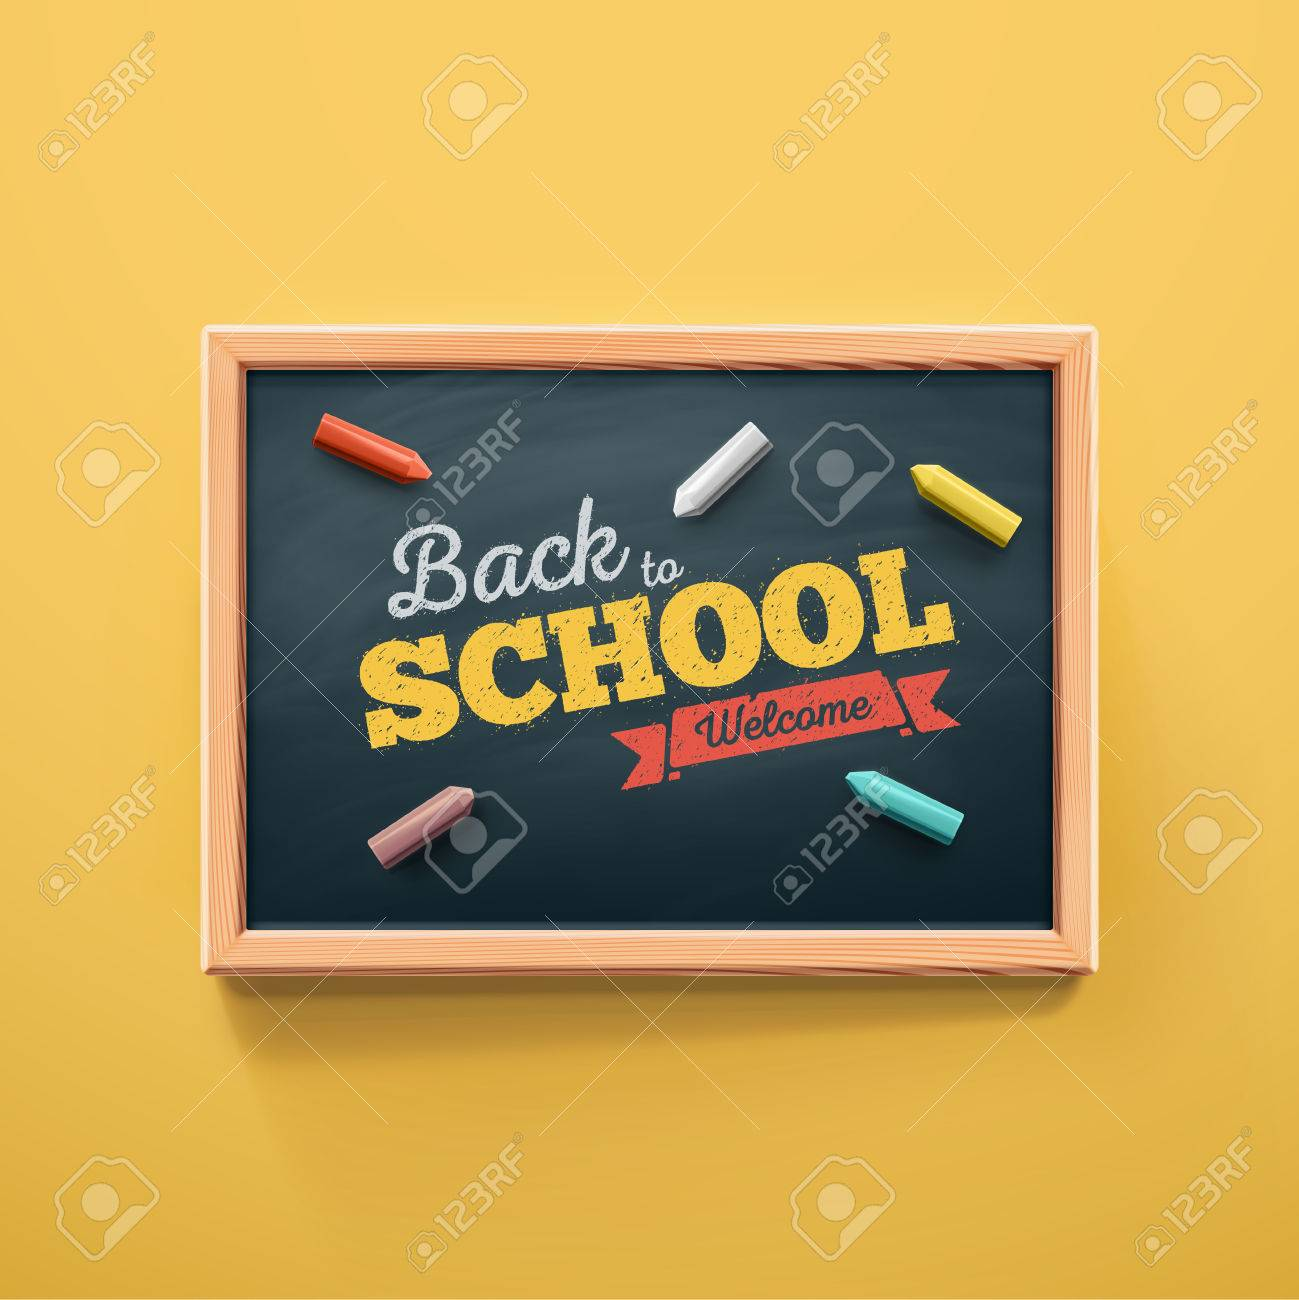 Back to school, eps 10 Standard-Bild - 43327848